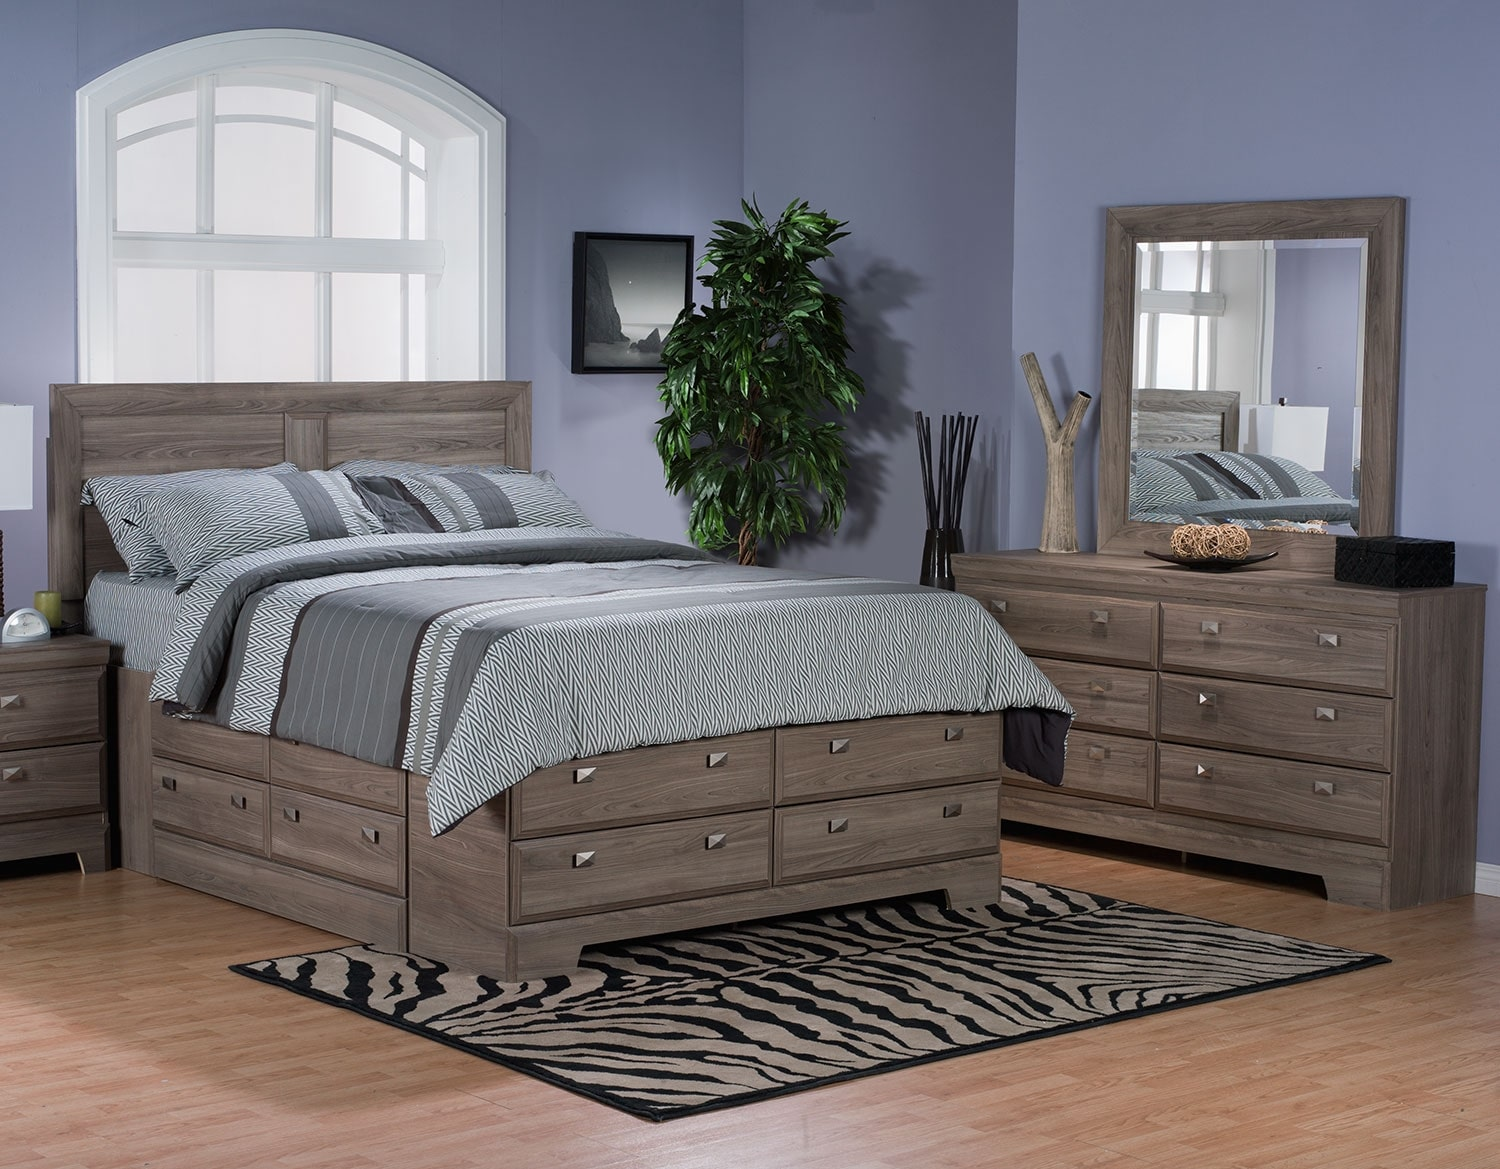 Bedroom Furniture - Yorkdale Light 5-Piece Full Storage Bedroom Package